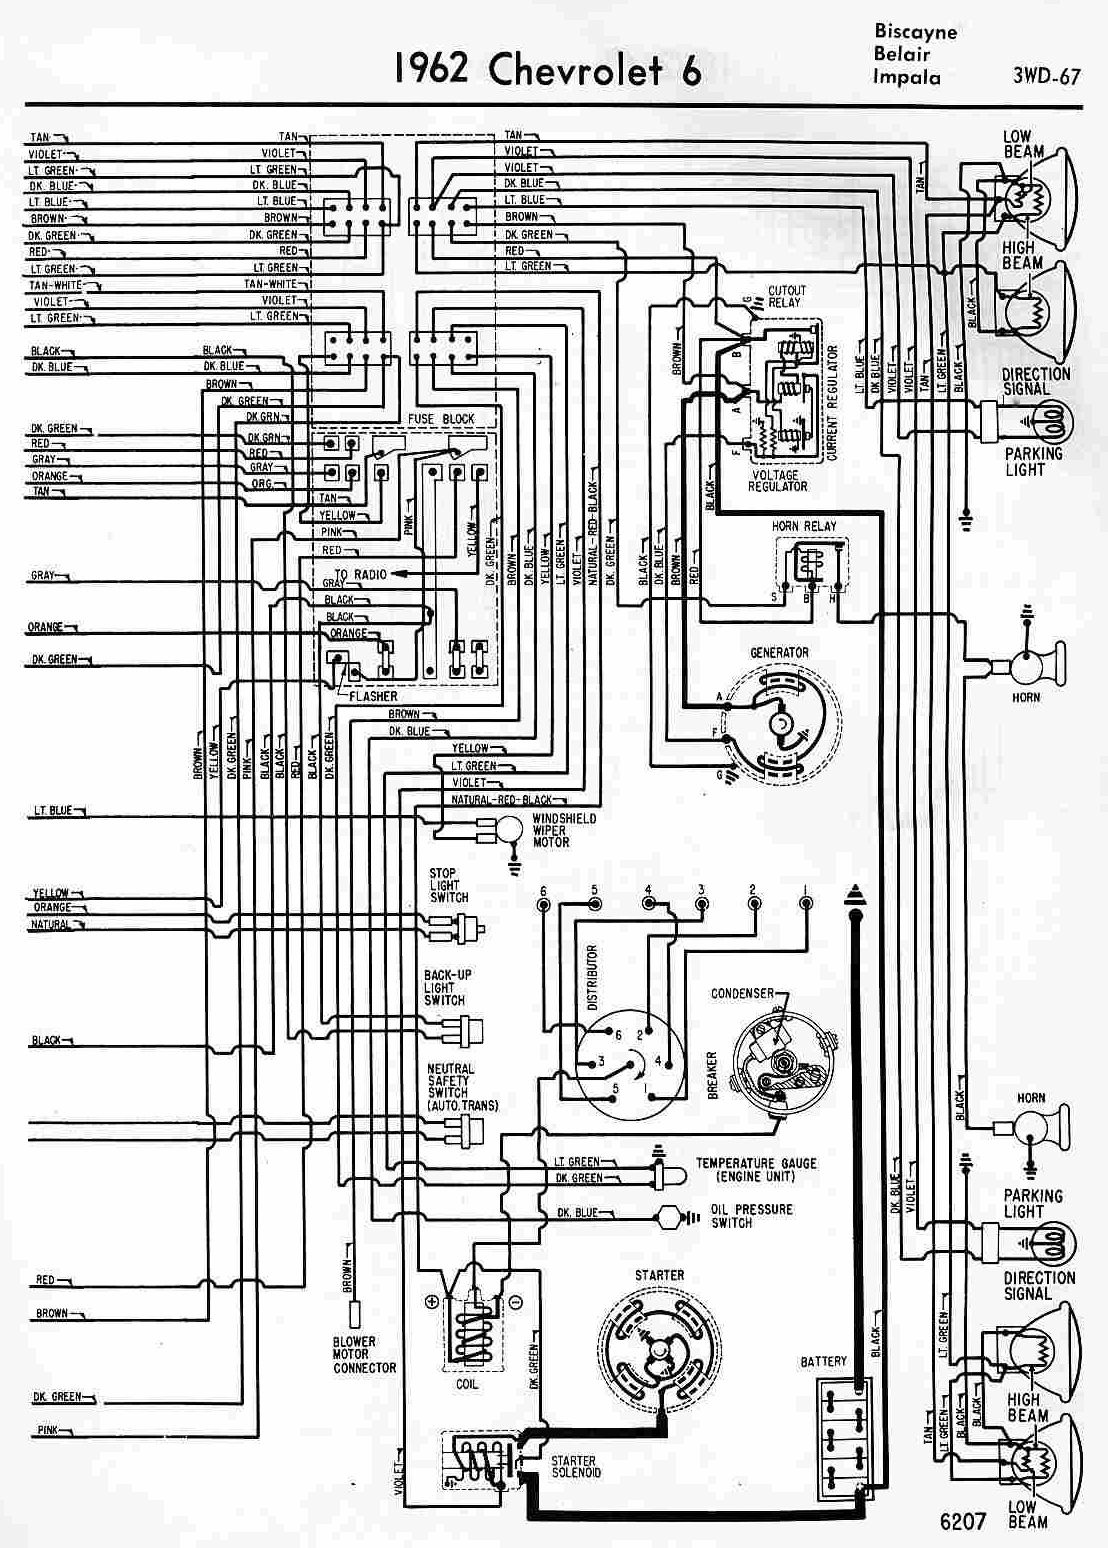 1963 Chevy Impala Horn Wiring | Wiring Diagram on chevy truck wiring schematic, acura tl wiring schematic, chevy silverado trailer wiring, chevy suburban wiring schematic, chevy colorado wiring schematic, chevy avalanche wiring schematic, ford f-350 wiring schematic, ford super duty wiring schematic, toyota tundra wiring schematic, dodge challenger wiring schematic, gmc wiring schematic, ford ranger wiring schematic, 1999 chevy transmission schematic, ford f150 wiring schematic, camaro wiring schematic, dodge charger wiring schematic, chevy blazer wiring schematic, ford expedition wiring schematic, toyota camry wiring schematic, ford explorer wiring schematic,